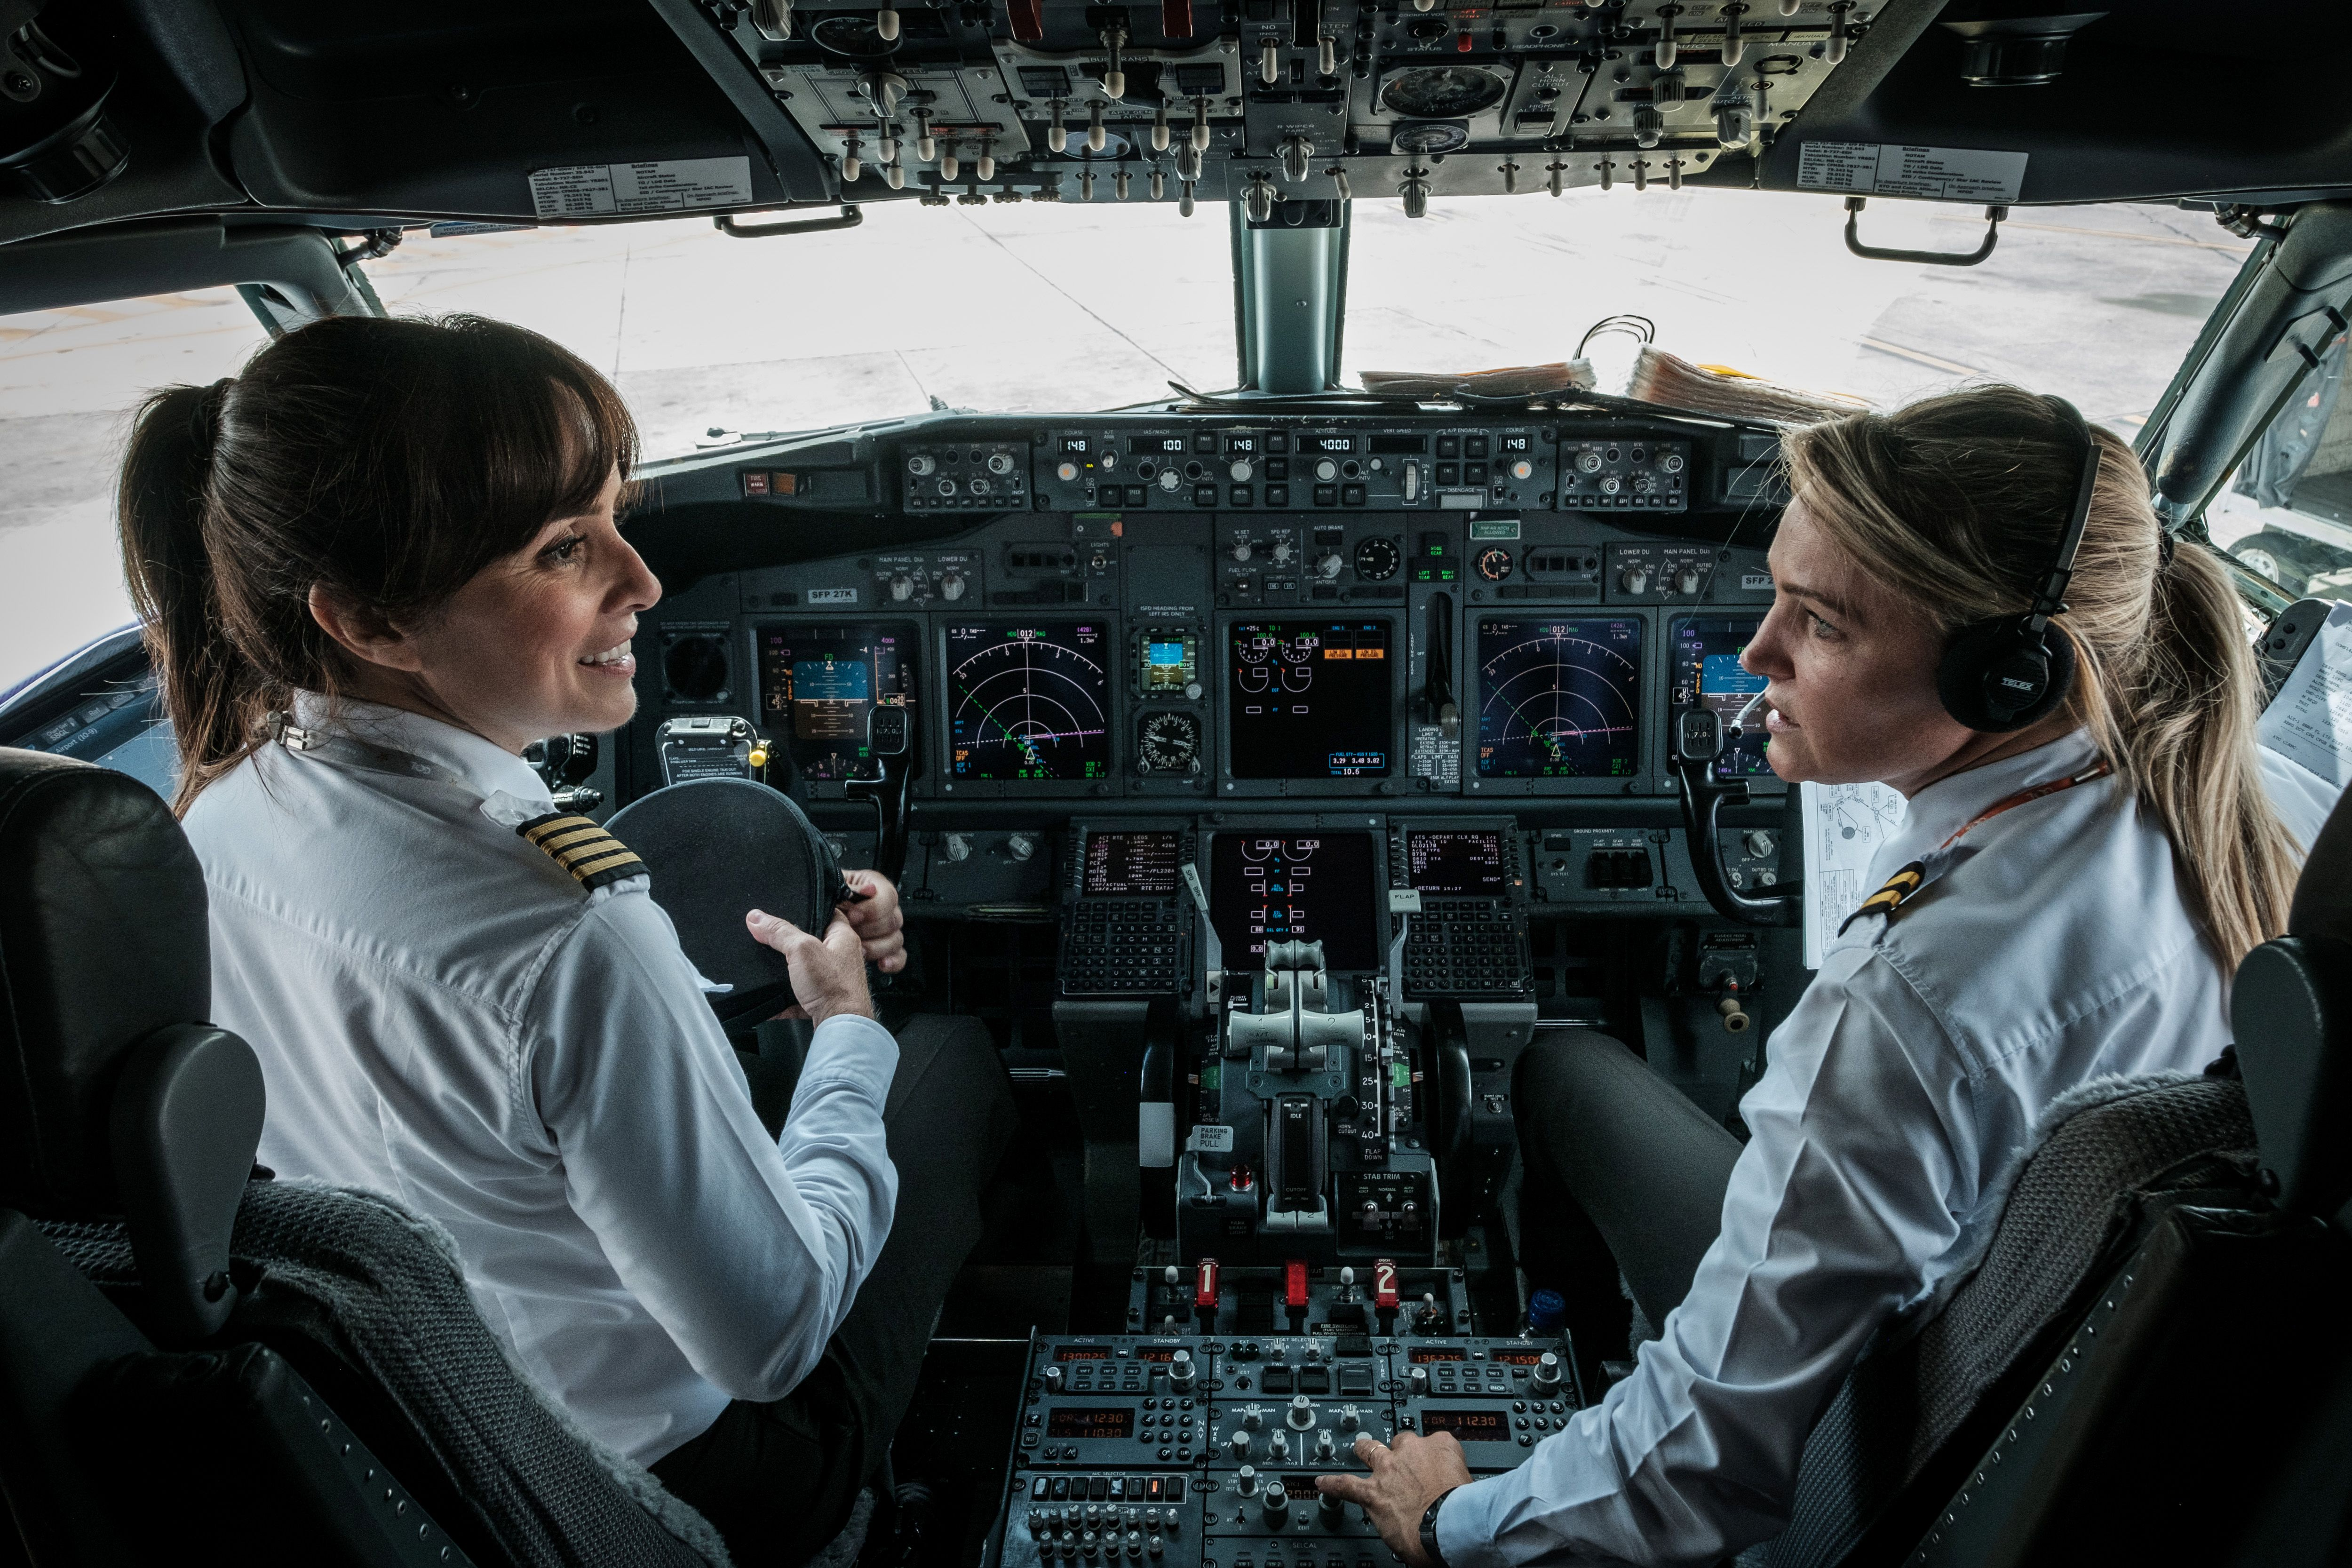 Brazilian airline GOL pilot Gabriela Carneiro Duarte (L) and her co-pilot prepare to take off on an all female crew flight to mark International Women's Day at Tom Jobim international airport, in Rio de Janeiro, Brazil, on March 8, 2017.